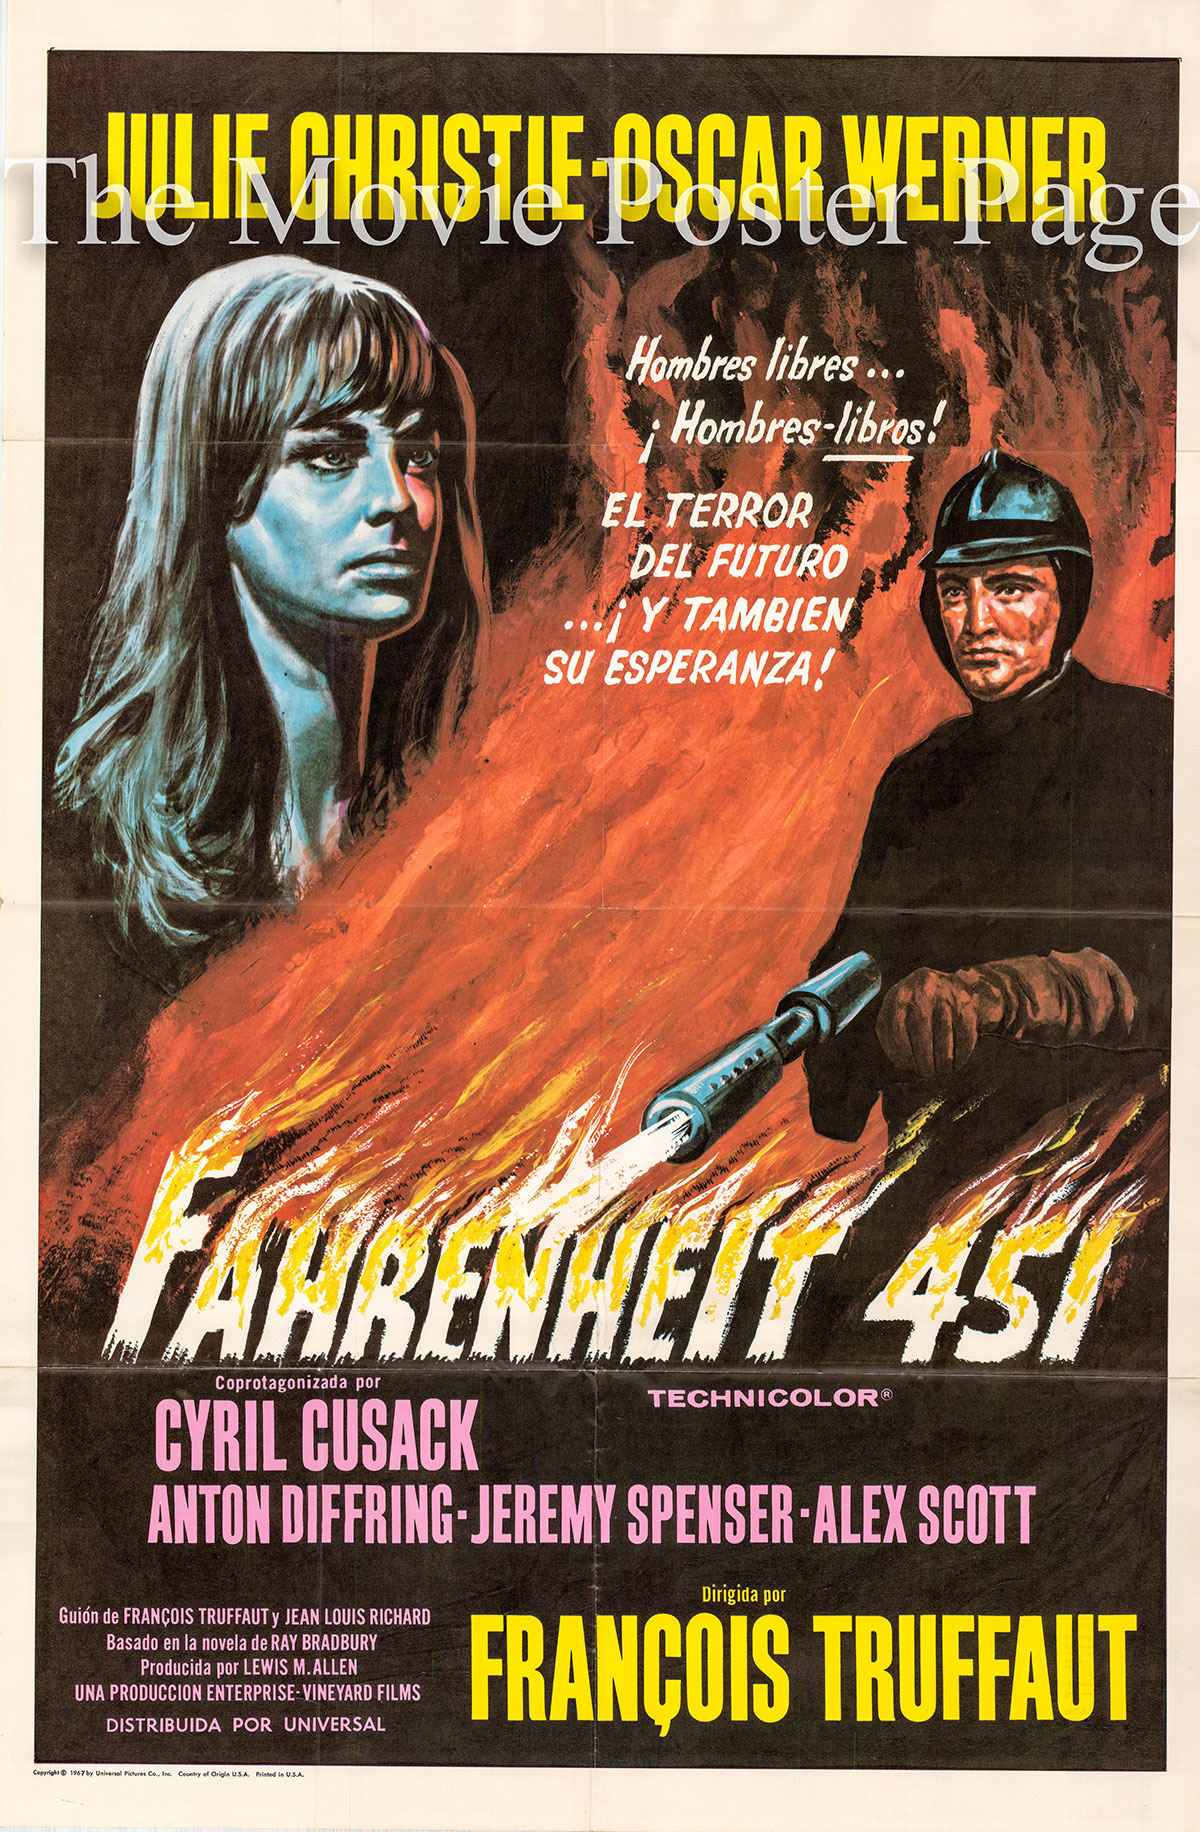 Pictured is a Spanish poster for the 1967 Francois Truffaut film Fahrenheit 451 starring Julie Christie.